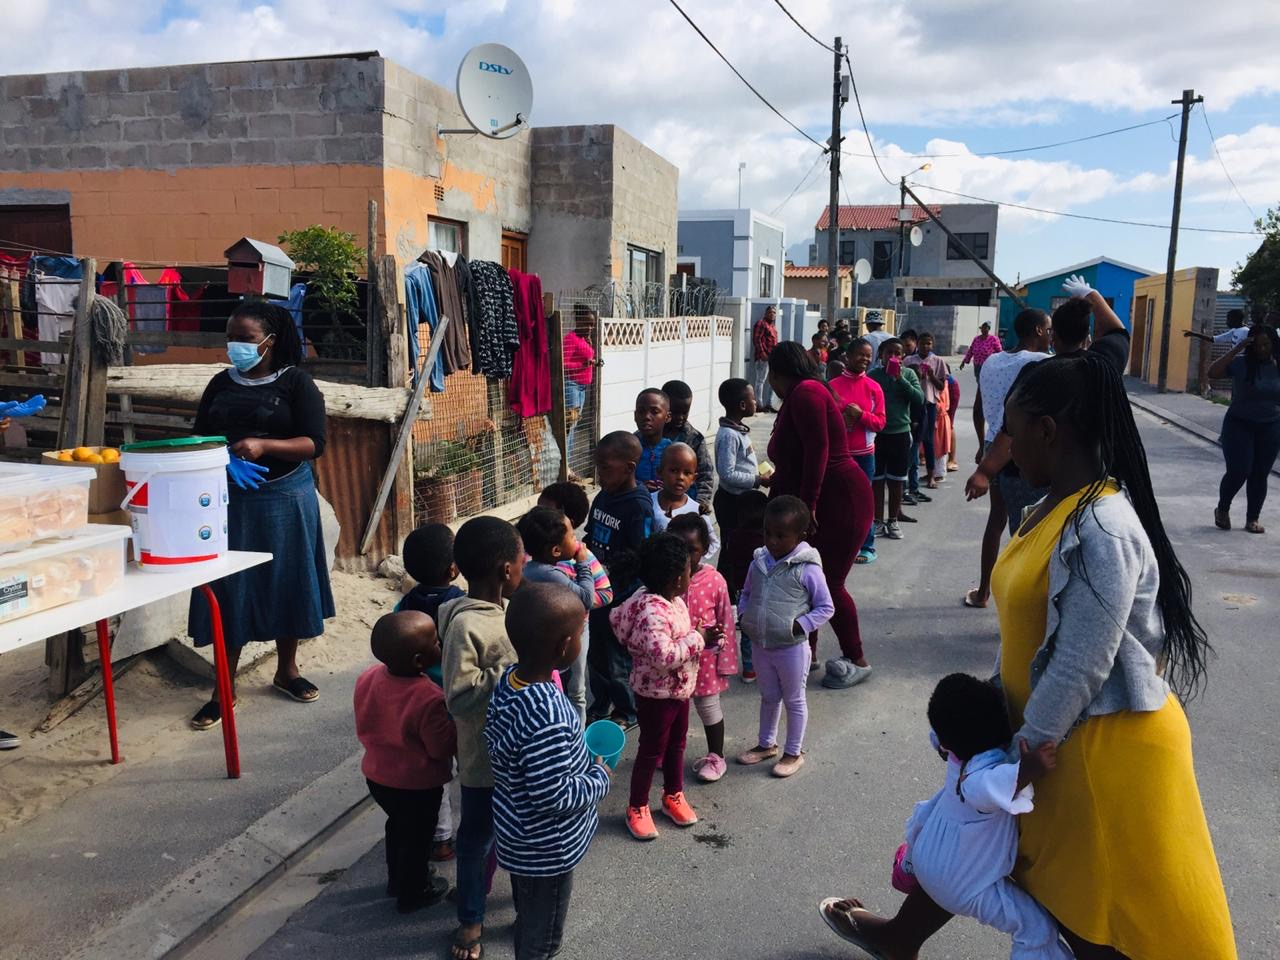 Food distribution in Nyanga during COVID-19 pandemic